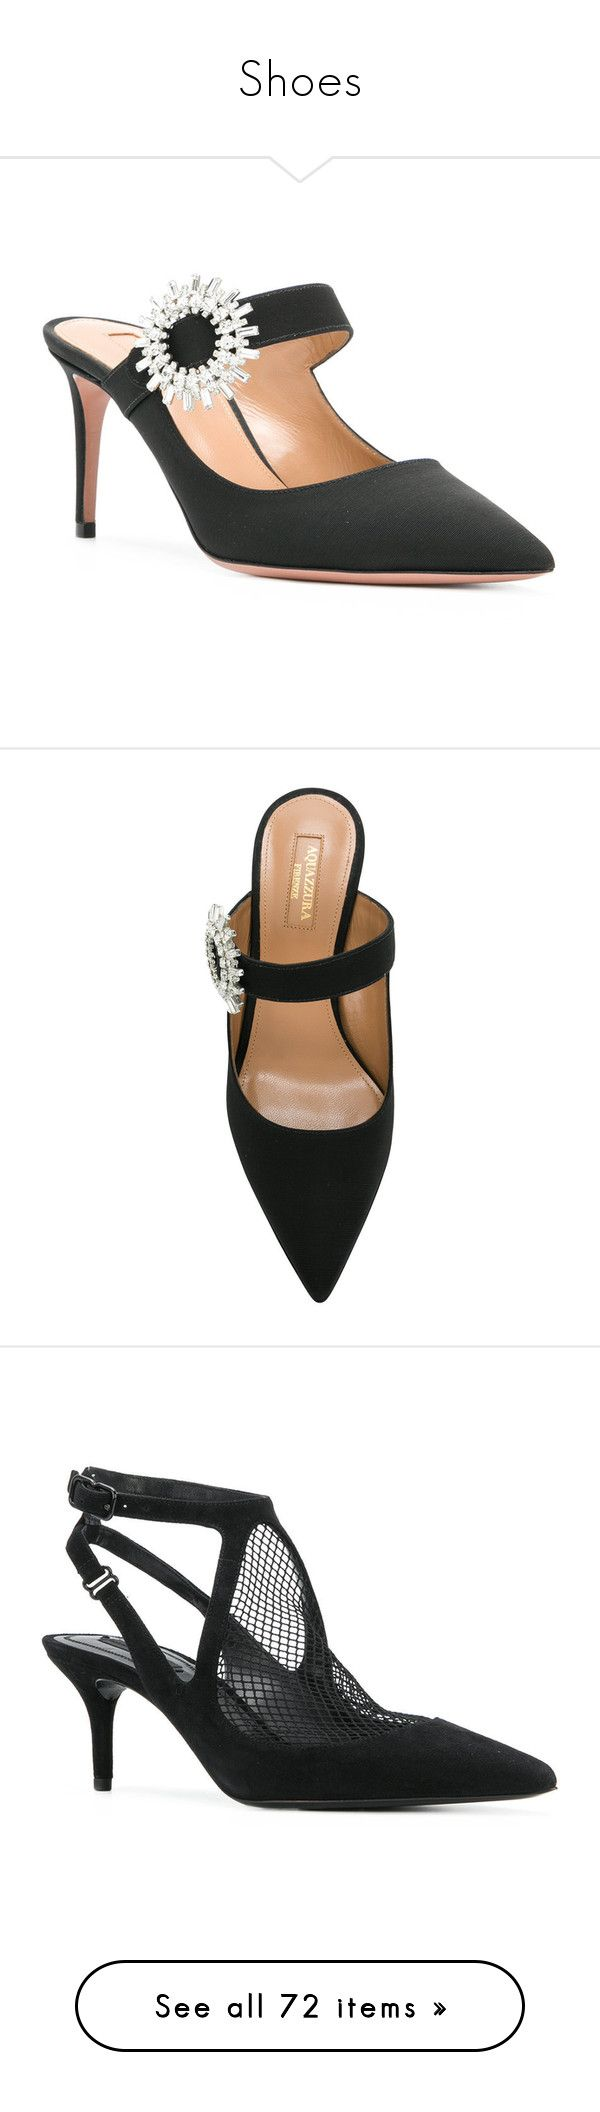 """""""Shoes"""" by bliznec ❤ liked on Polyvore featuring shoes, embellished shoes, ankle strap shoes, black shoes, pointy toe shoes, black mules, black pointed toe shoes, mule shoes, leather shoes and pumps"""